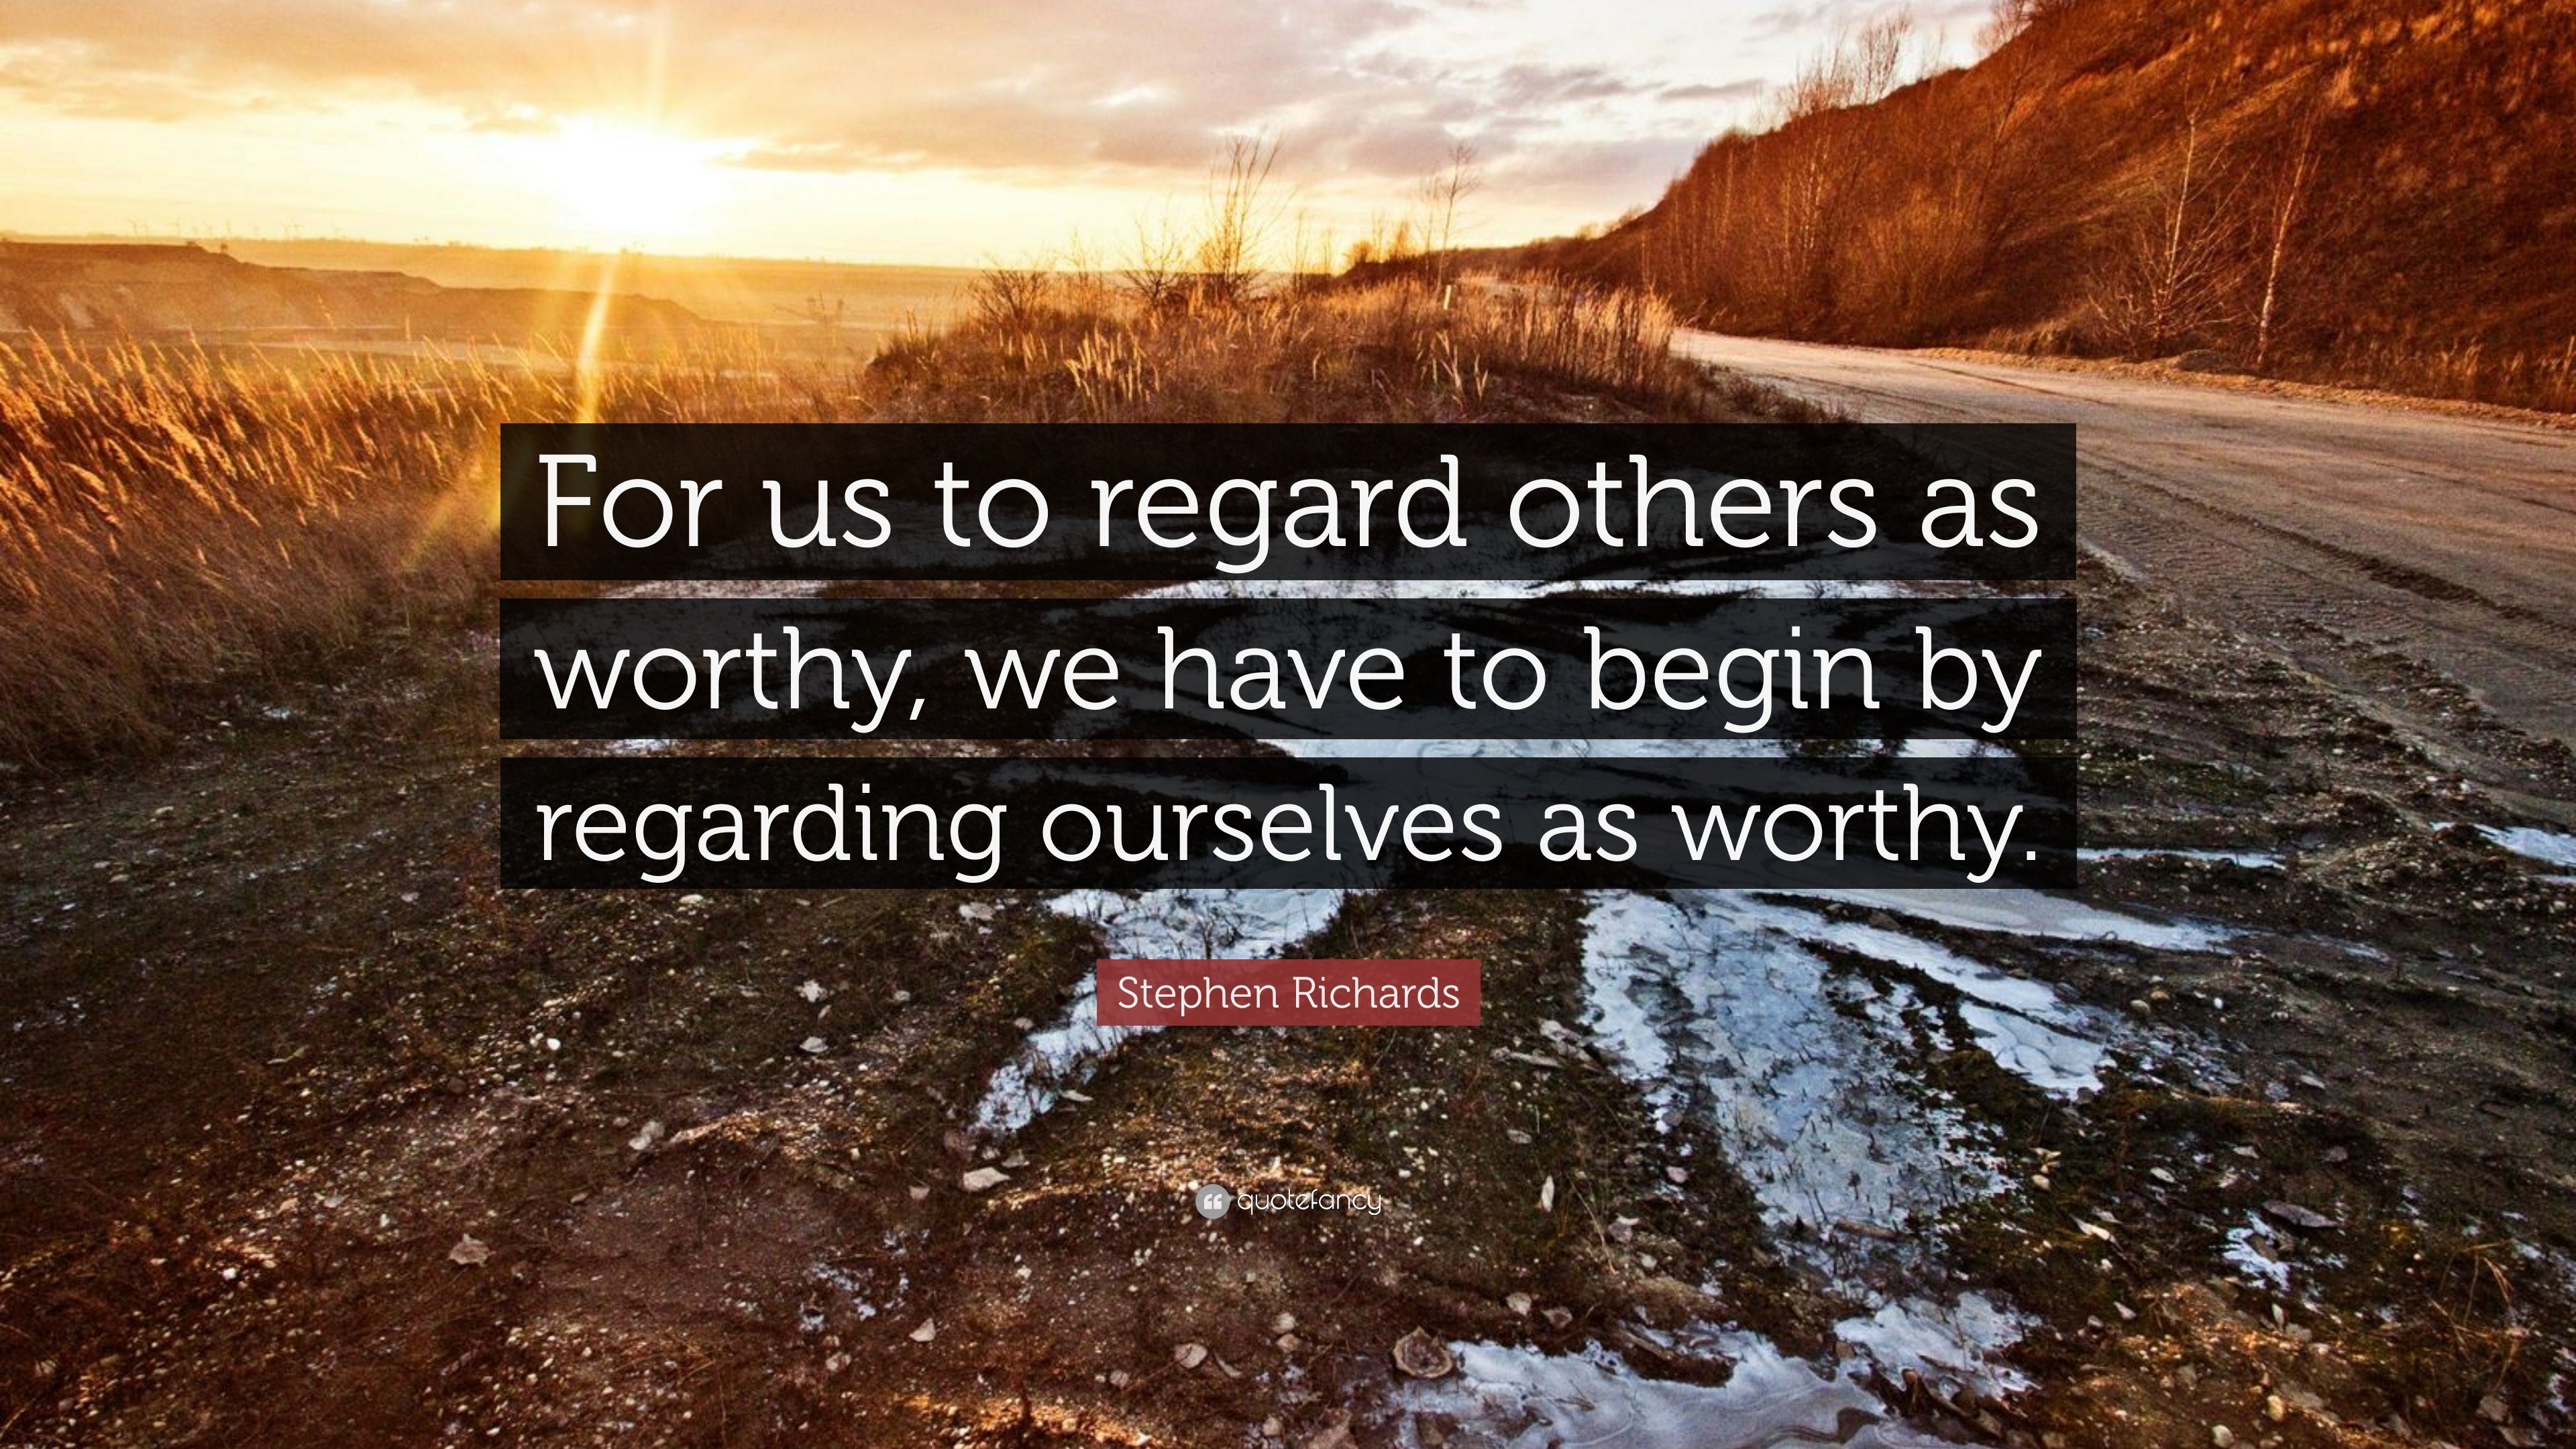 We accept exactly what we consider ourselves worthy